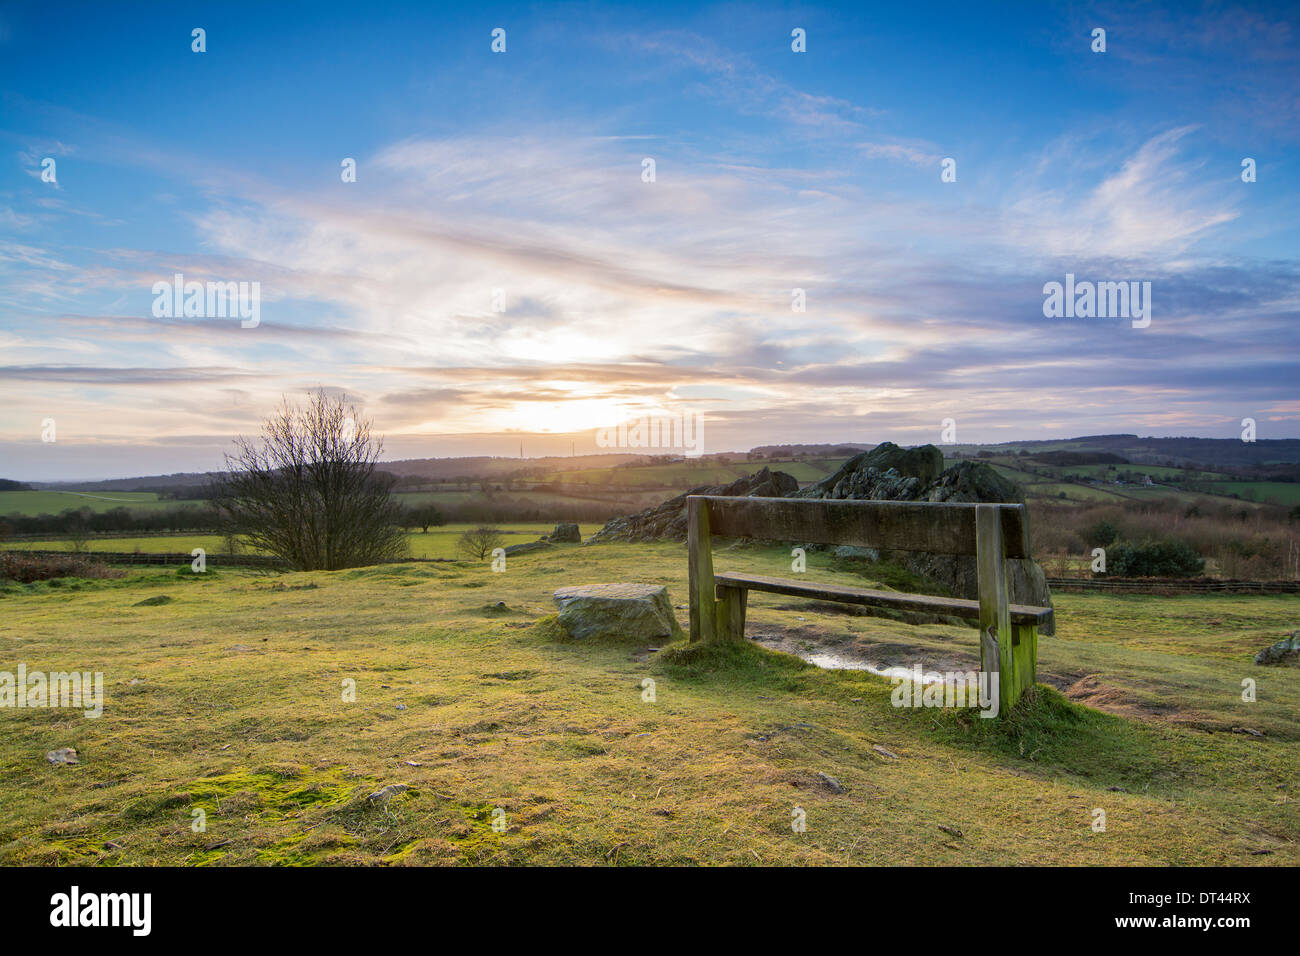 Warm Sunset in Leciestershire. - Stock Image